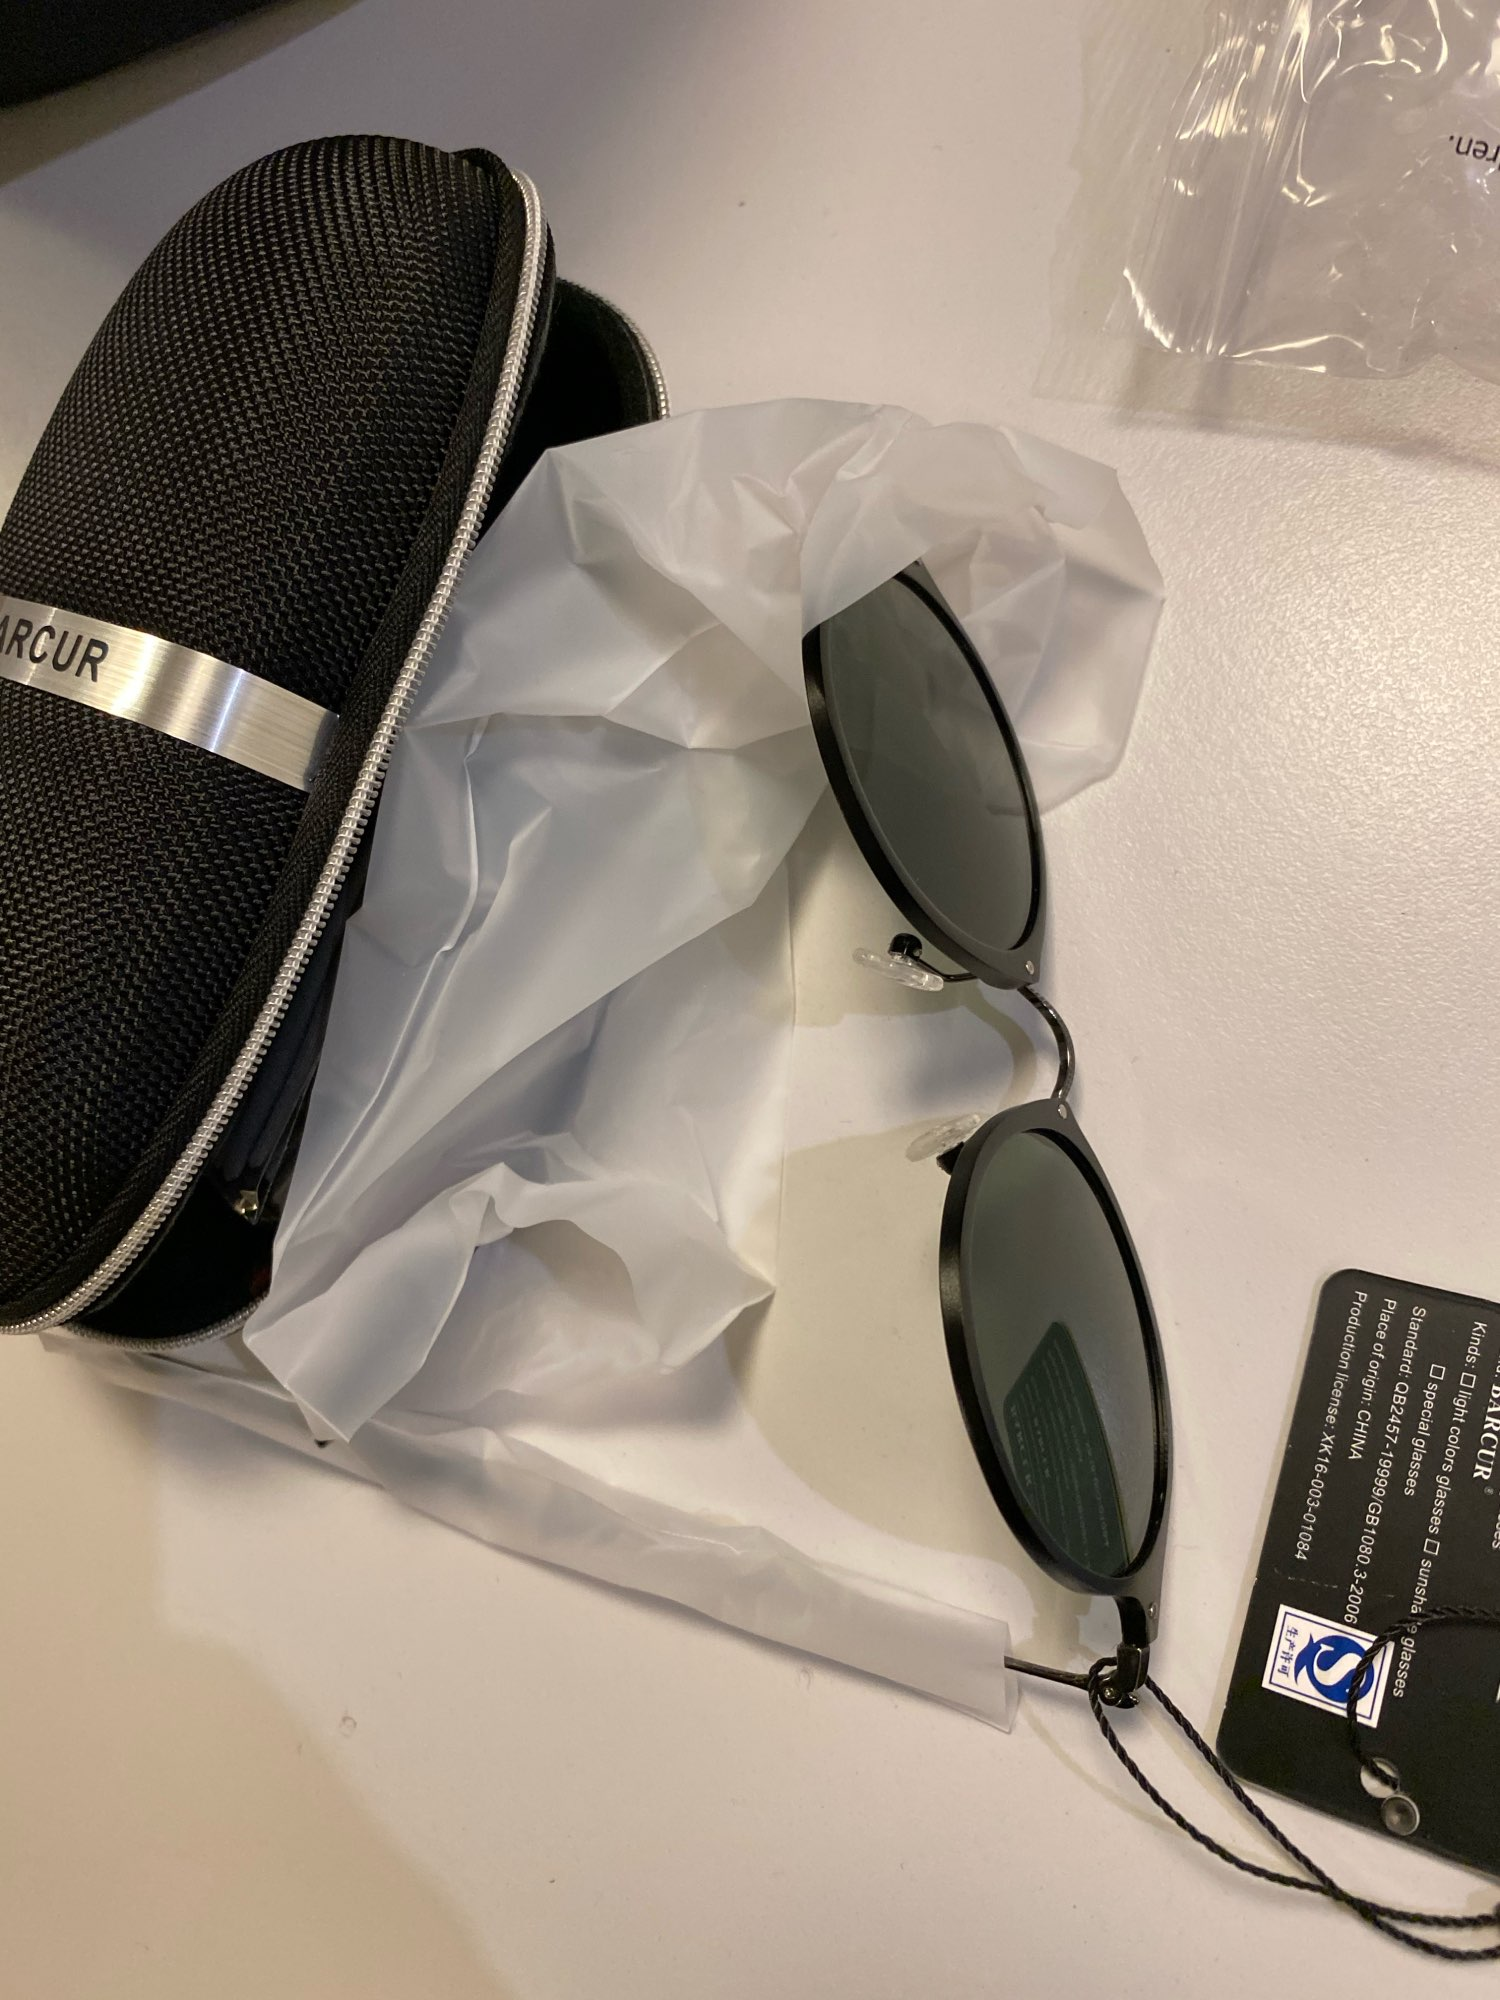 <strong>BARCUR Vintage</strong> - Aluminum Polarized Round Sunglasses For Women photo review